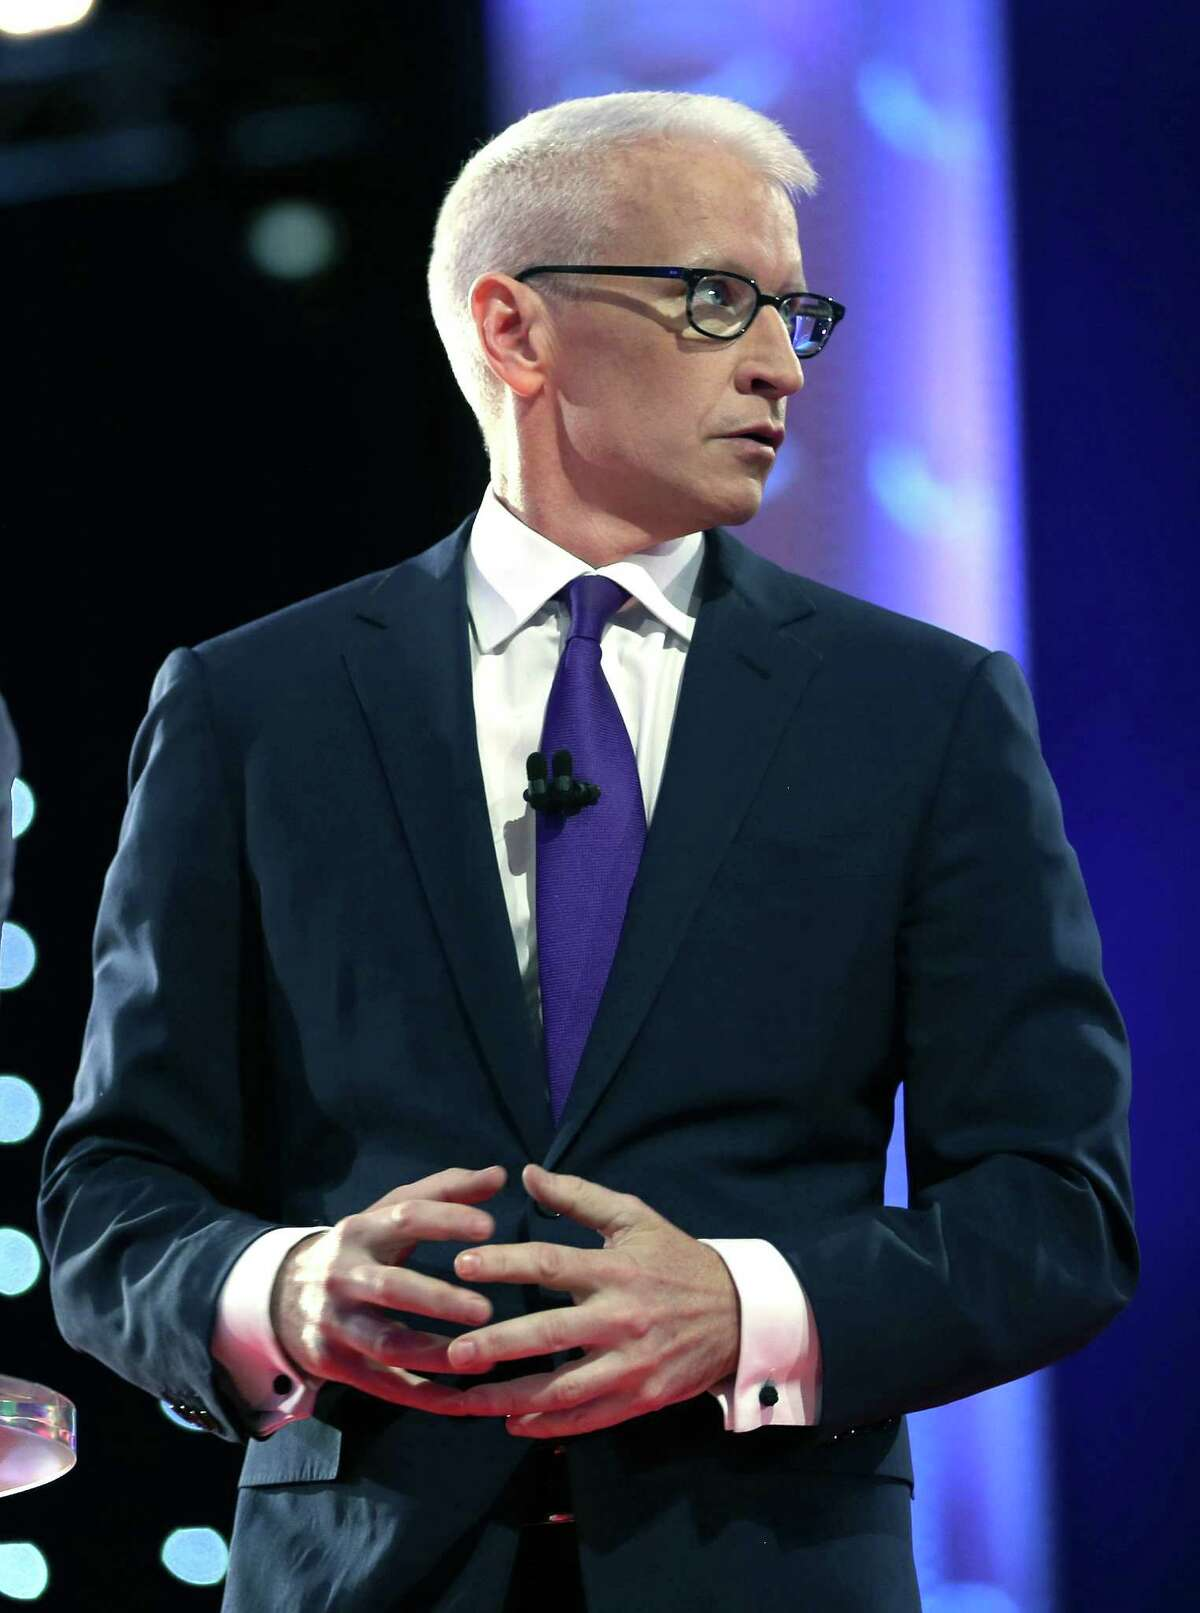 CNN anchor Anderson Cooper moderates the Democratic presidential debate sponsored by CNN and Facebook in Las Vegas on Tuesday.